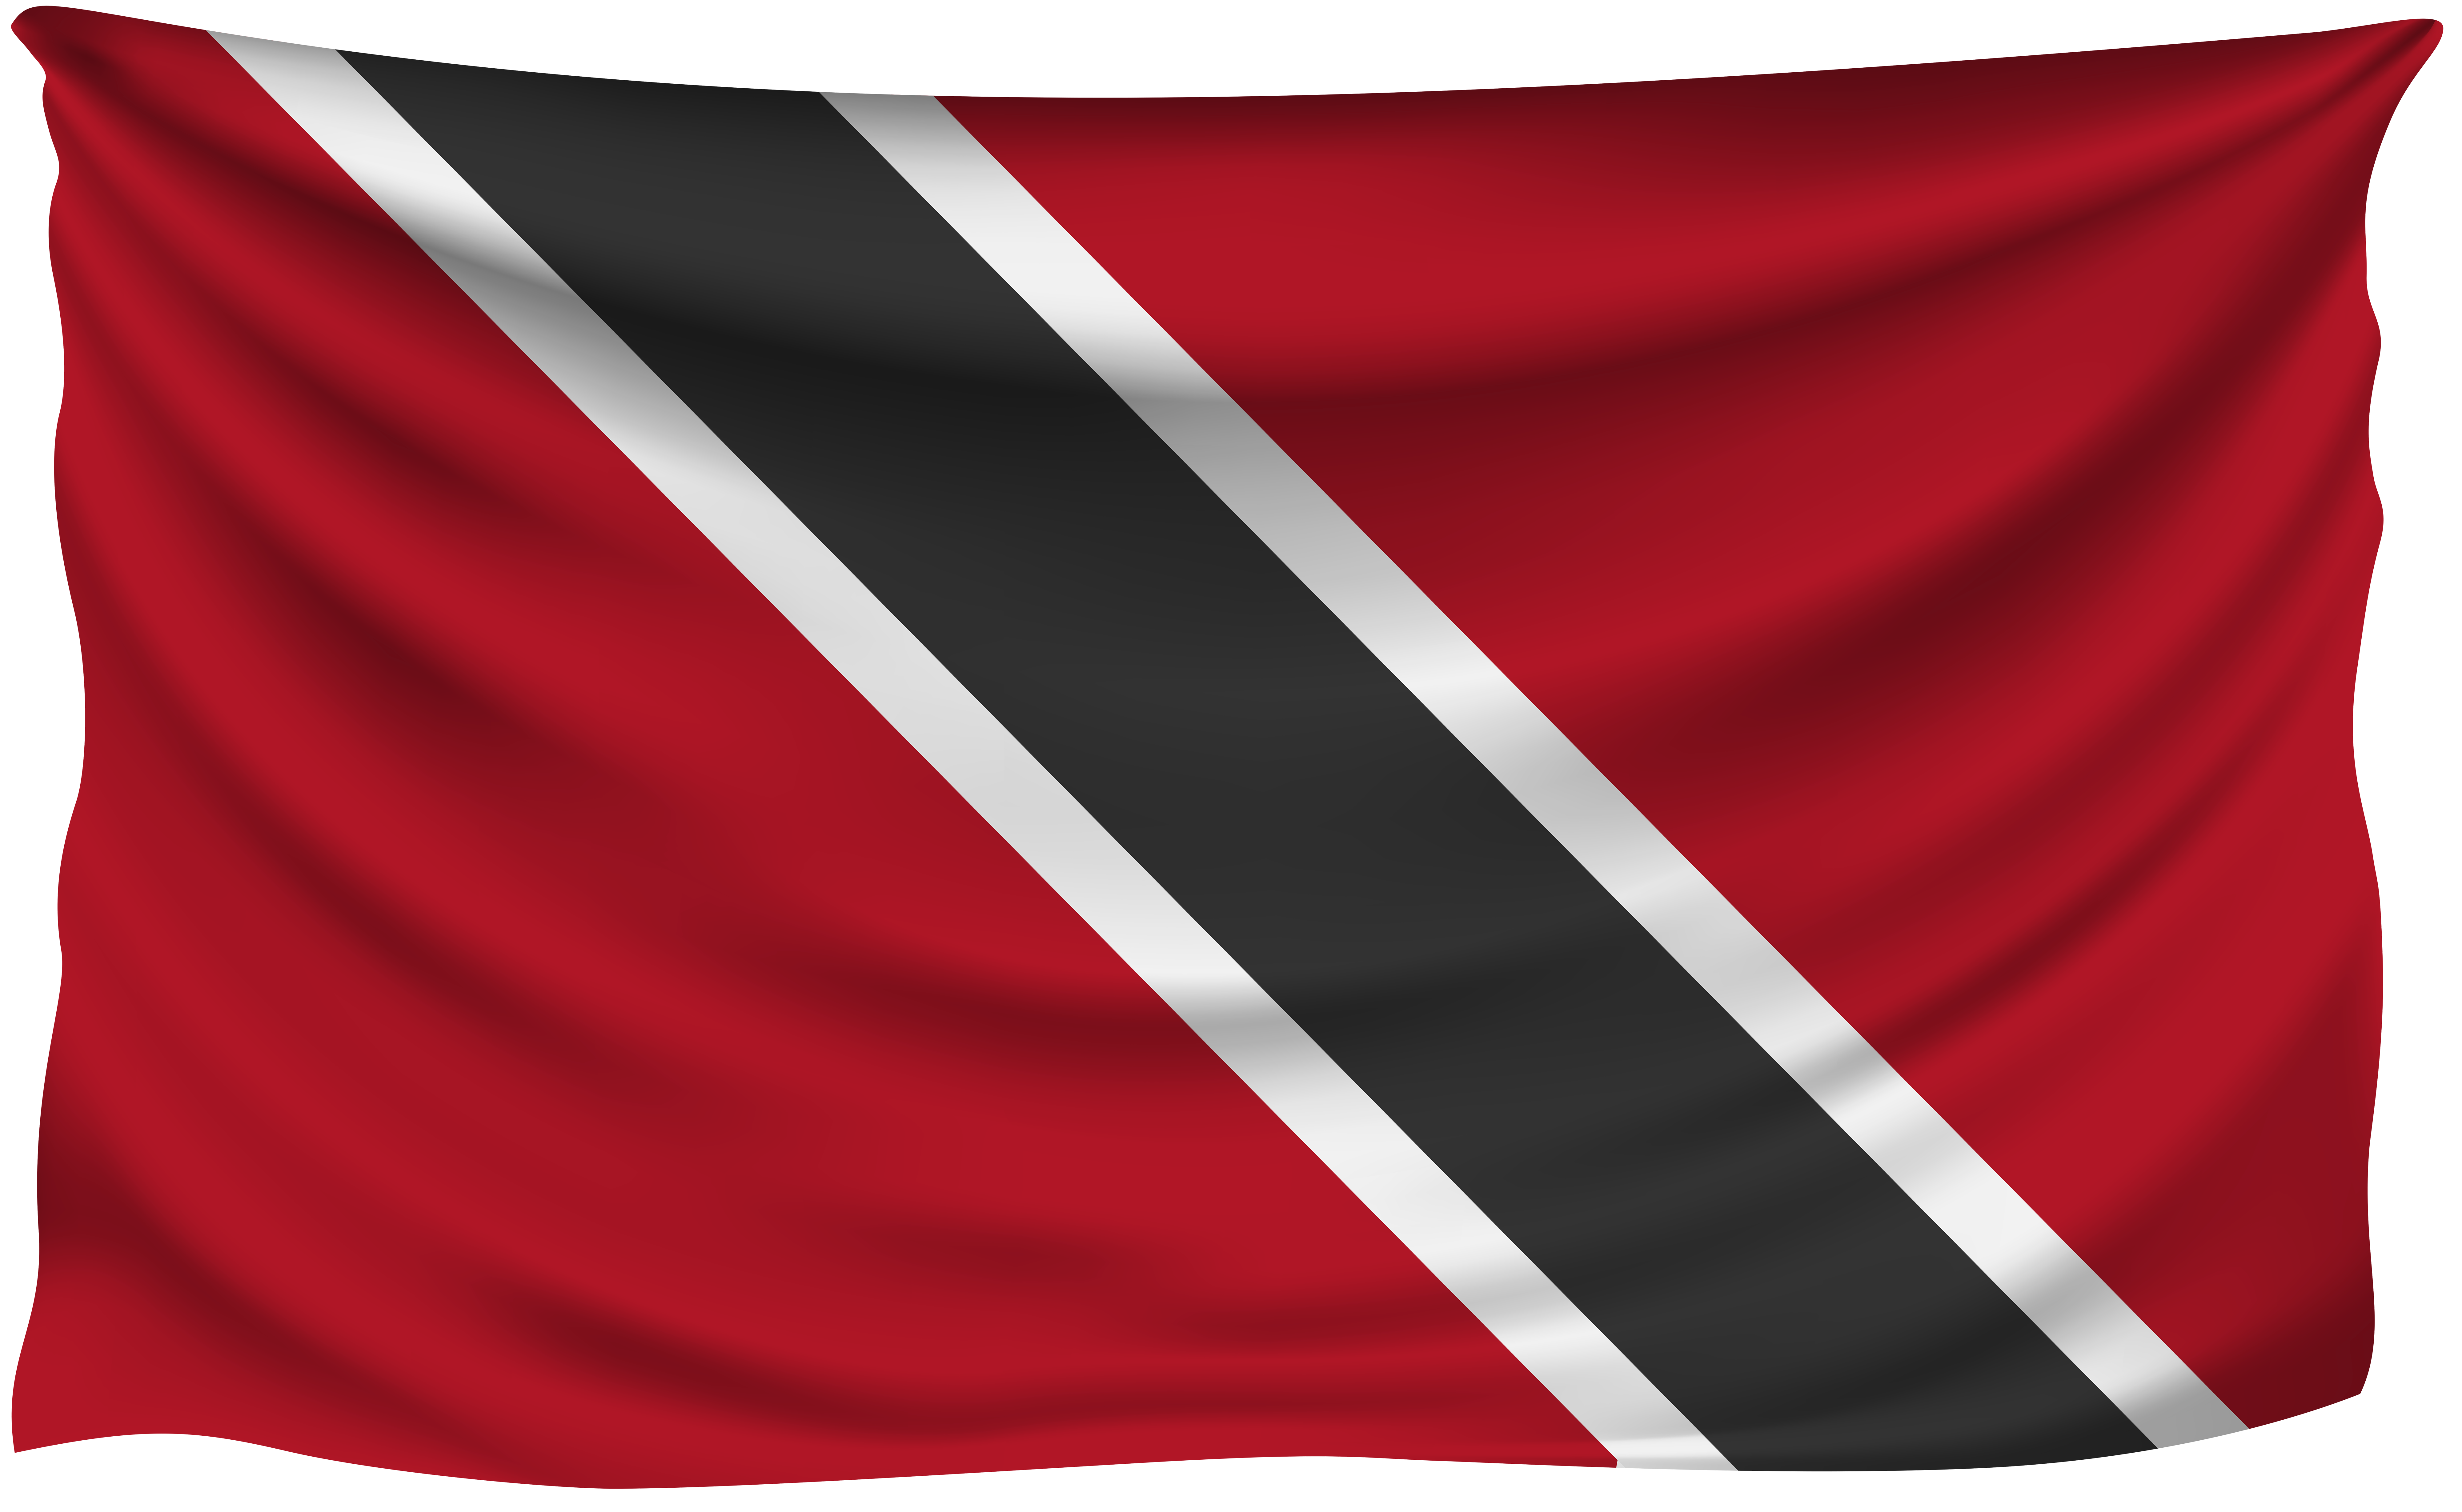 Trinidad clipart picture transparent library Trinidad and Tobago Wrinkled Flag | Gallery Yopriceville ... picture transparent library